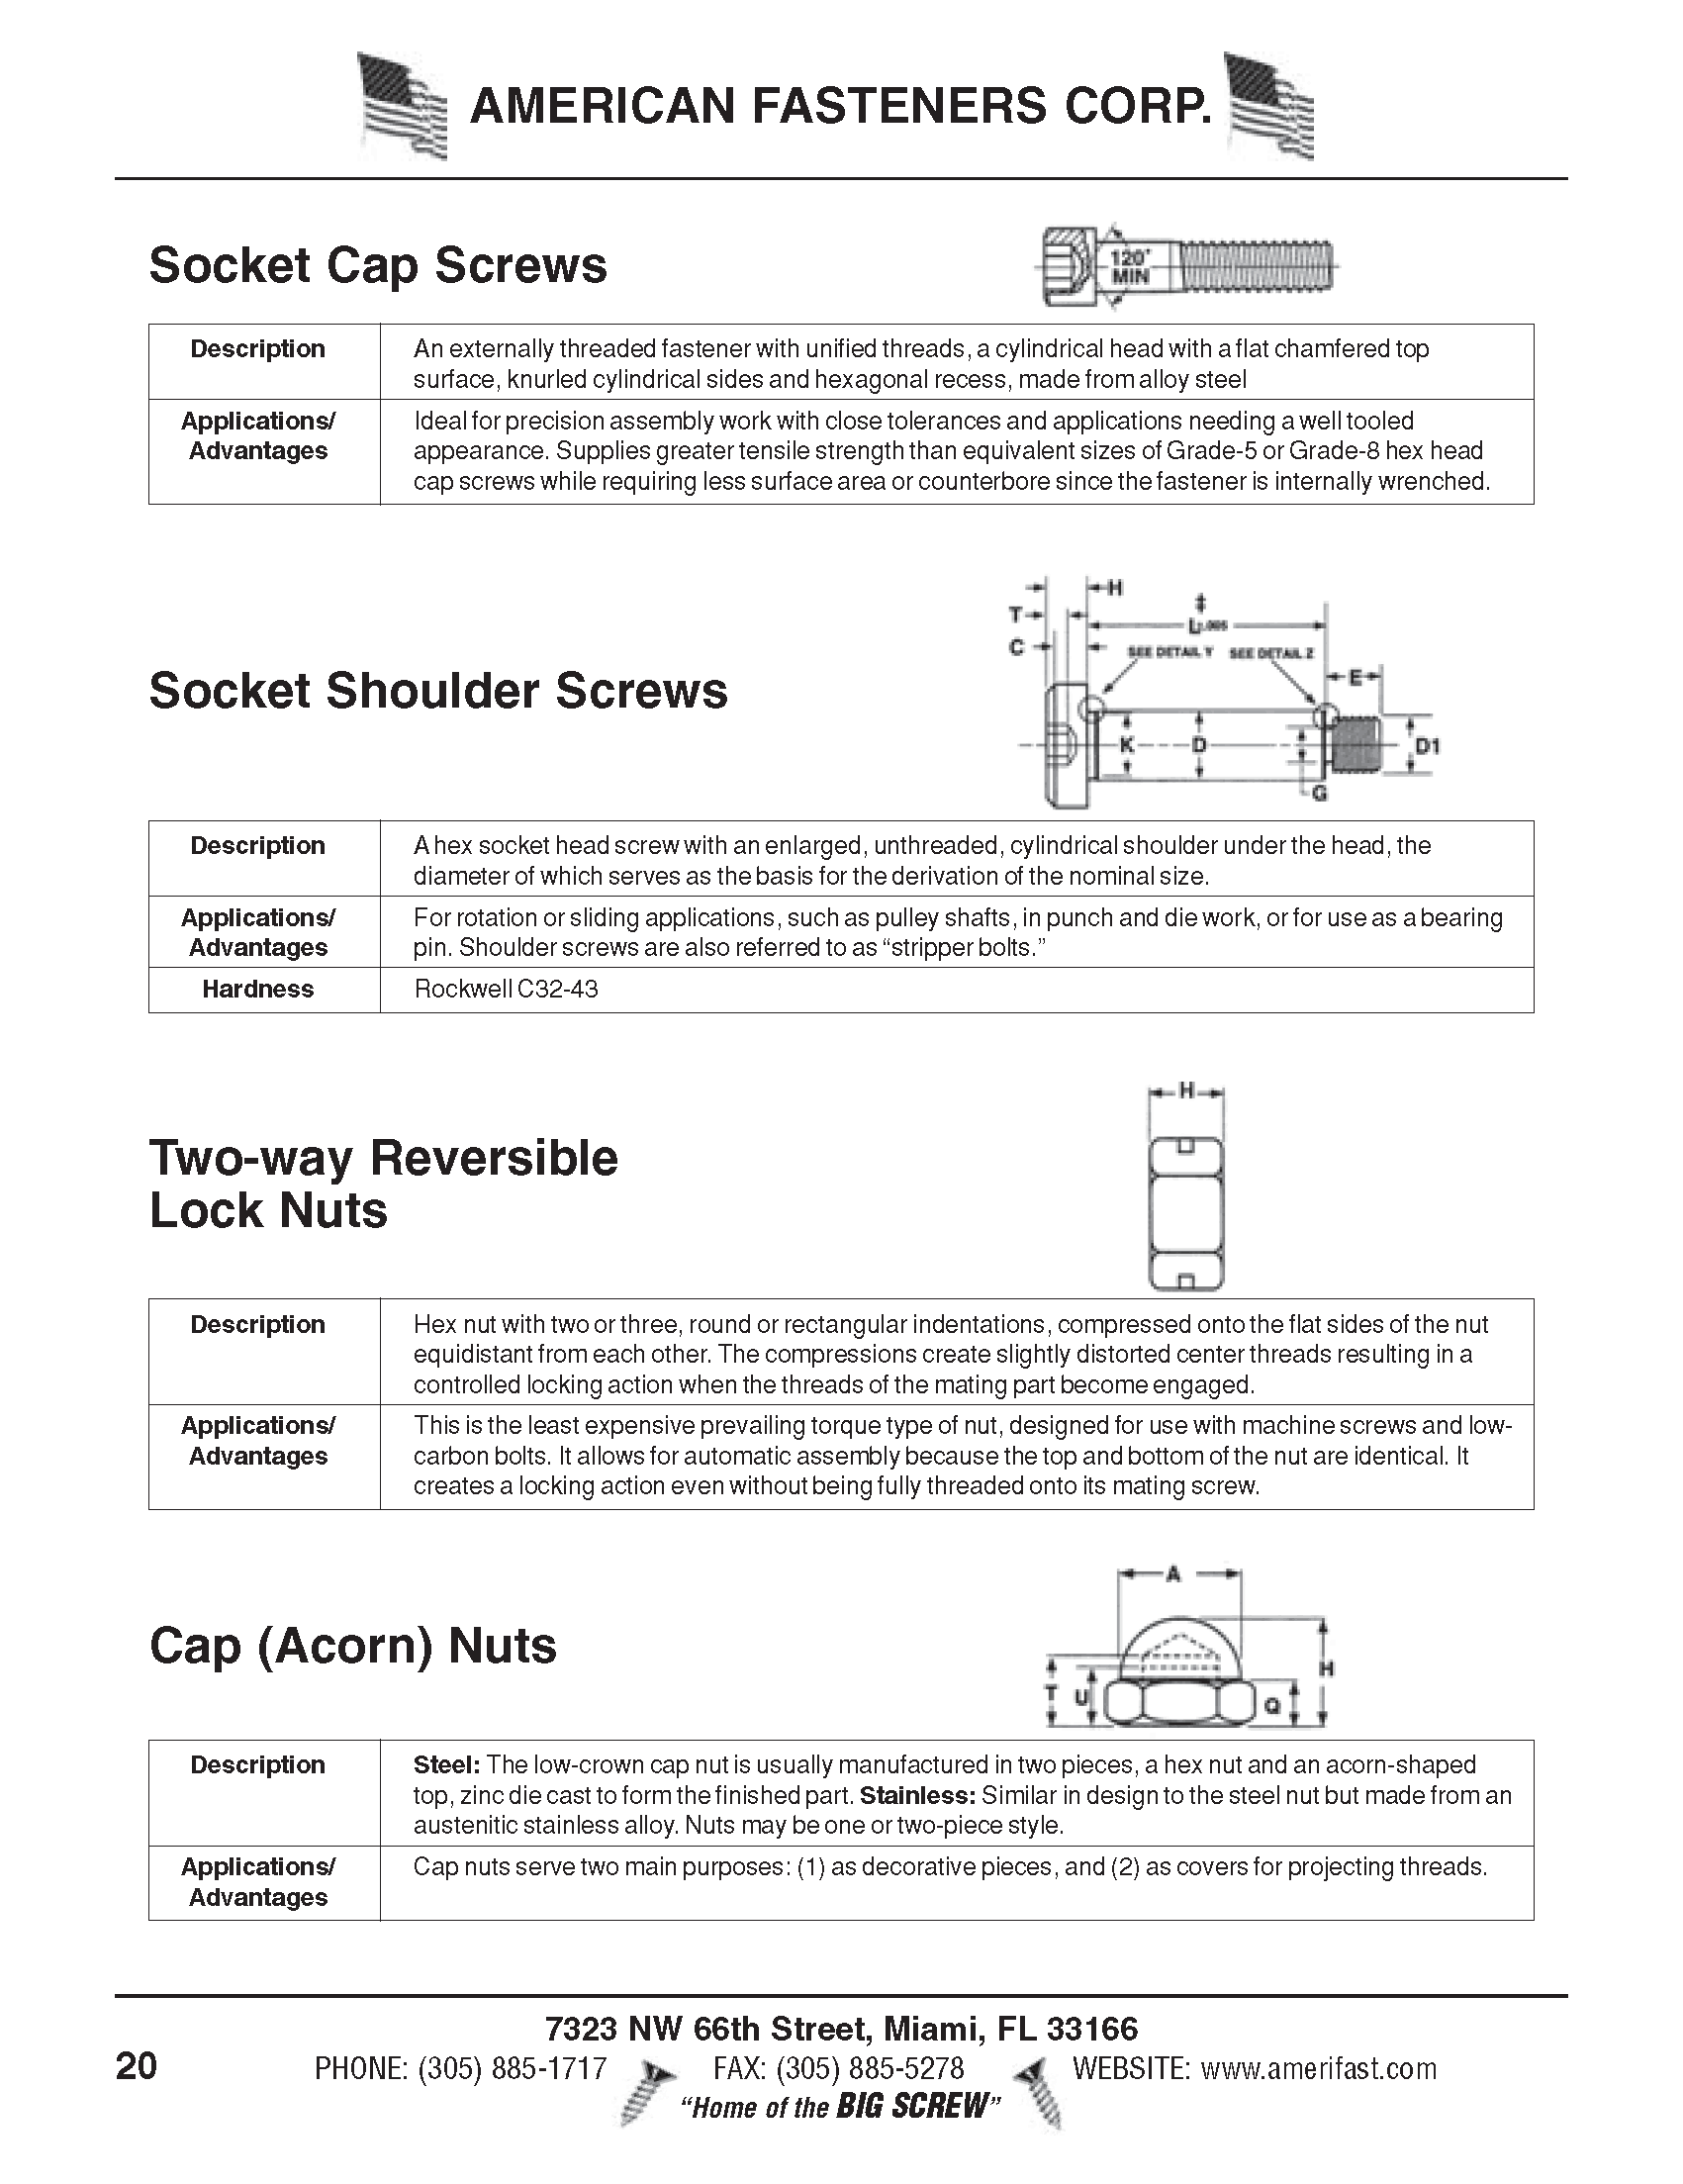 American-Fasteners-CATALOG1_Page_027